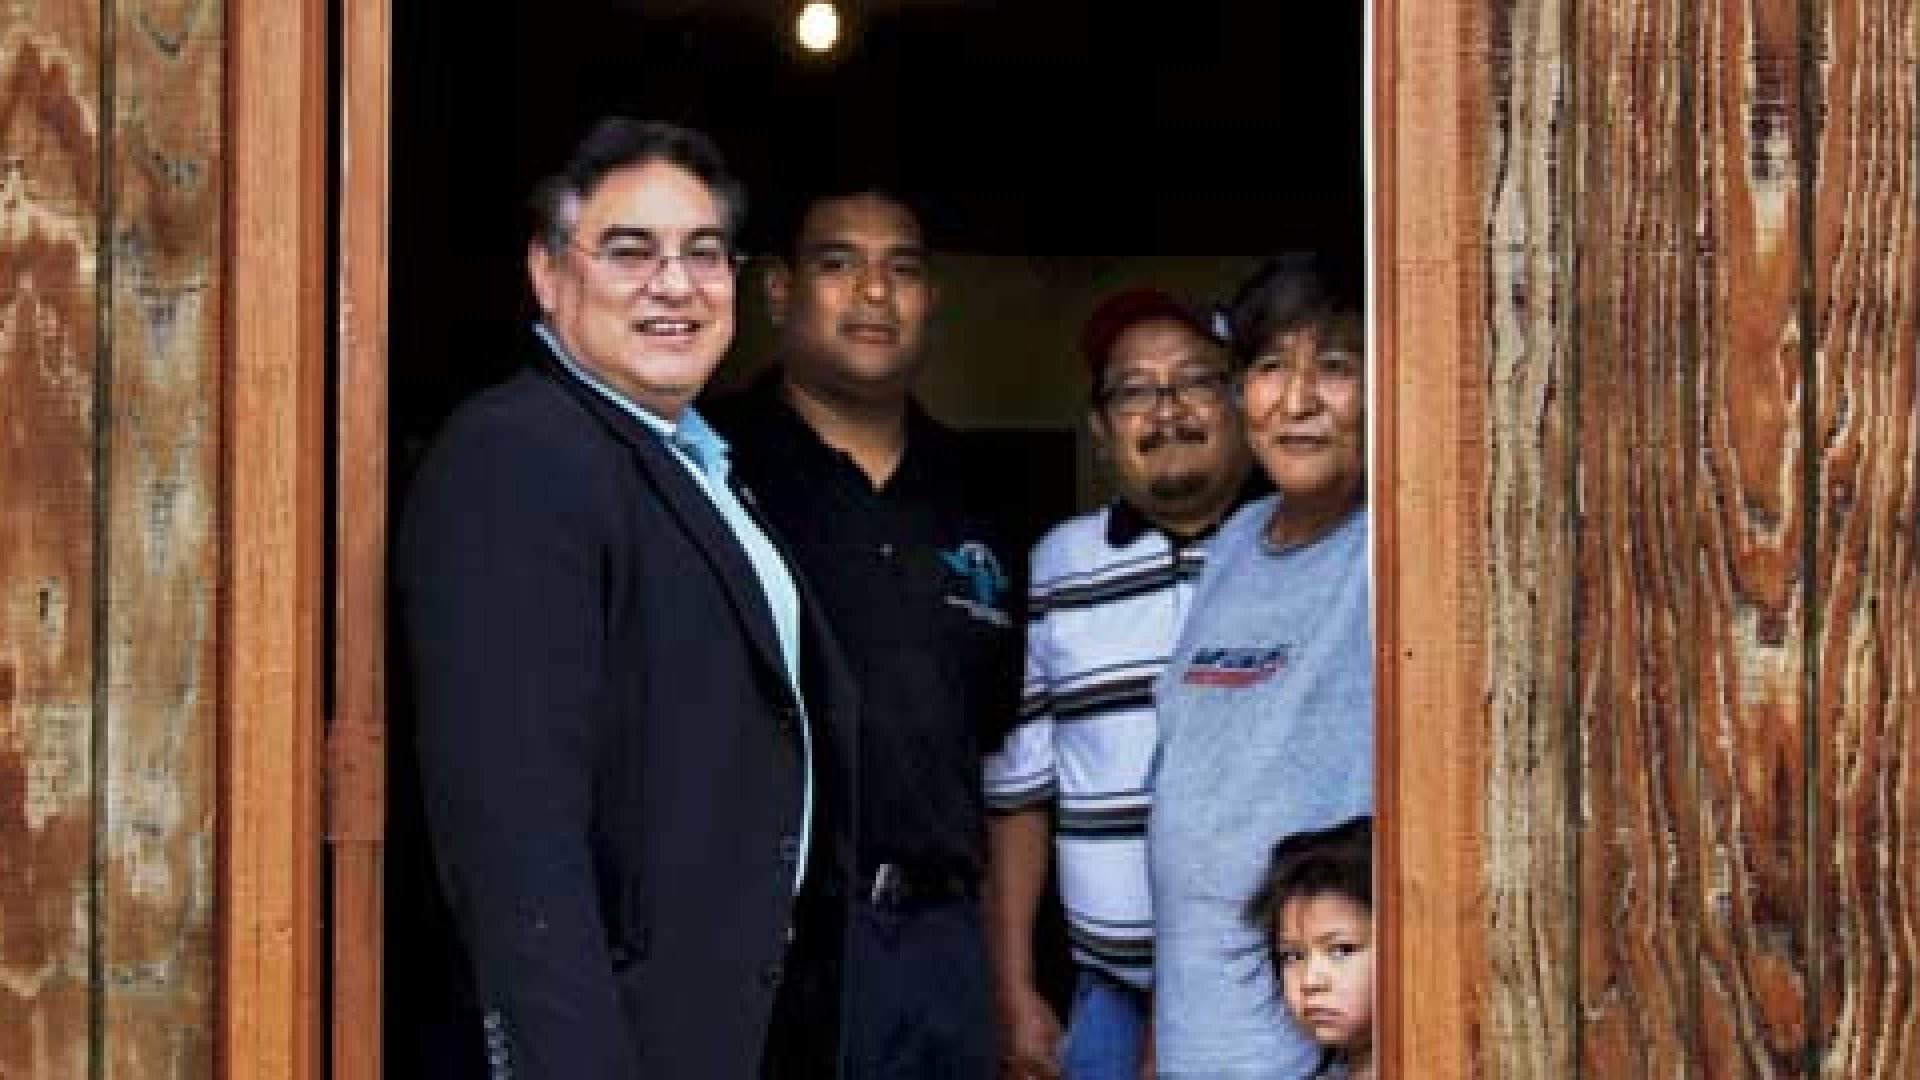 Thanks to Dave Melton, families like the Gordos, who live off the grid on the Navajo reservation in New Mexico, now have electricity.